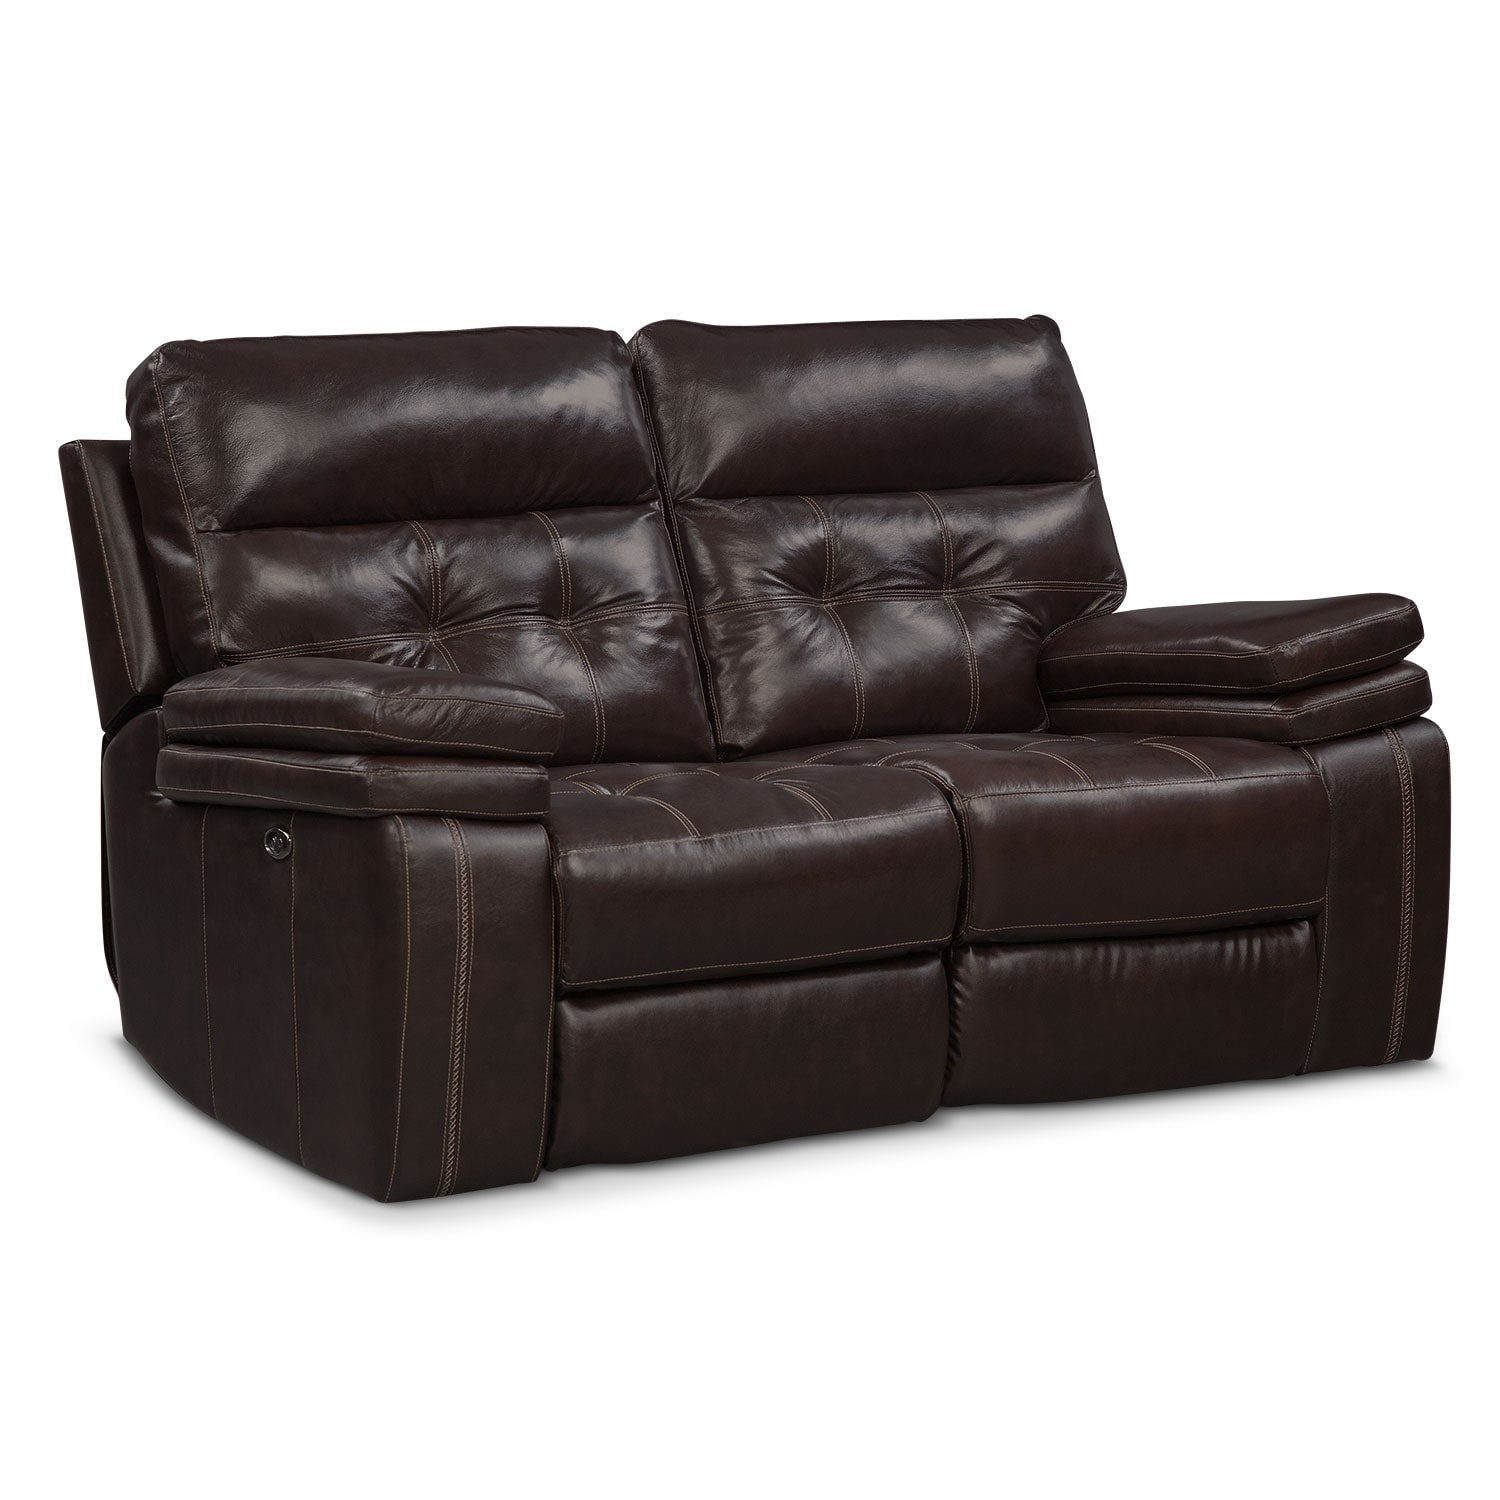 Brisco power reclining sofa and reclining loveseat set Power reclining sofas and loveseats